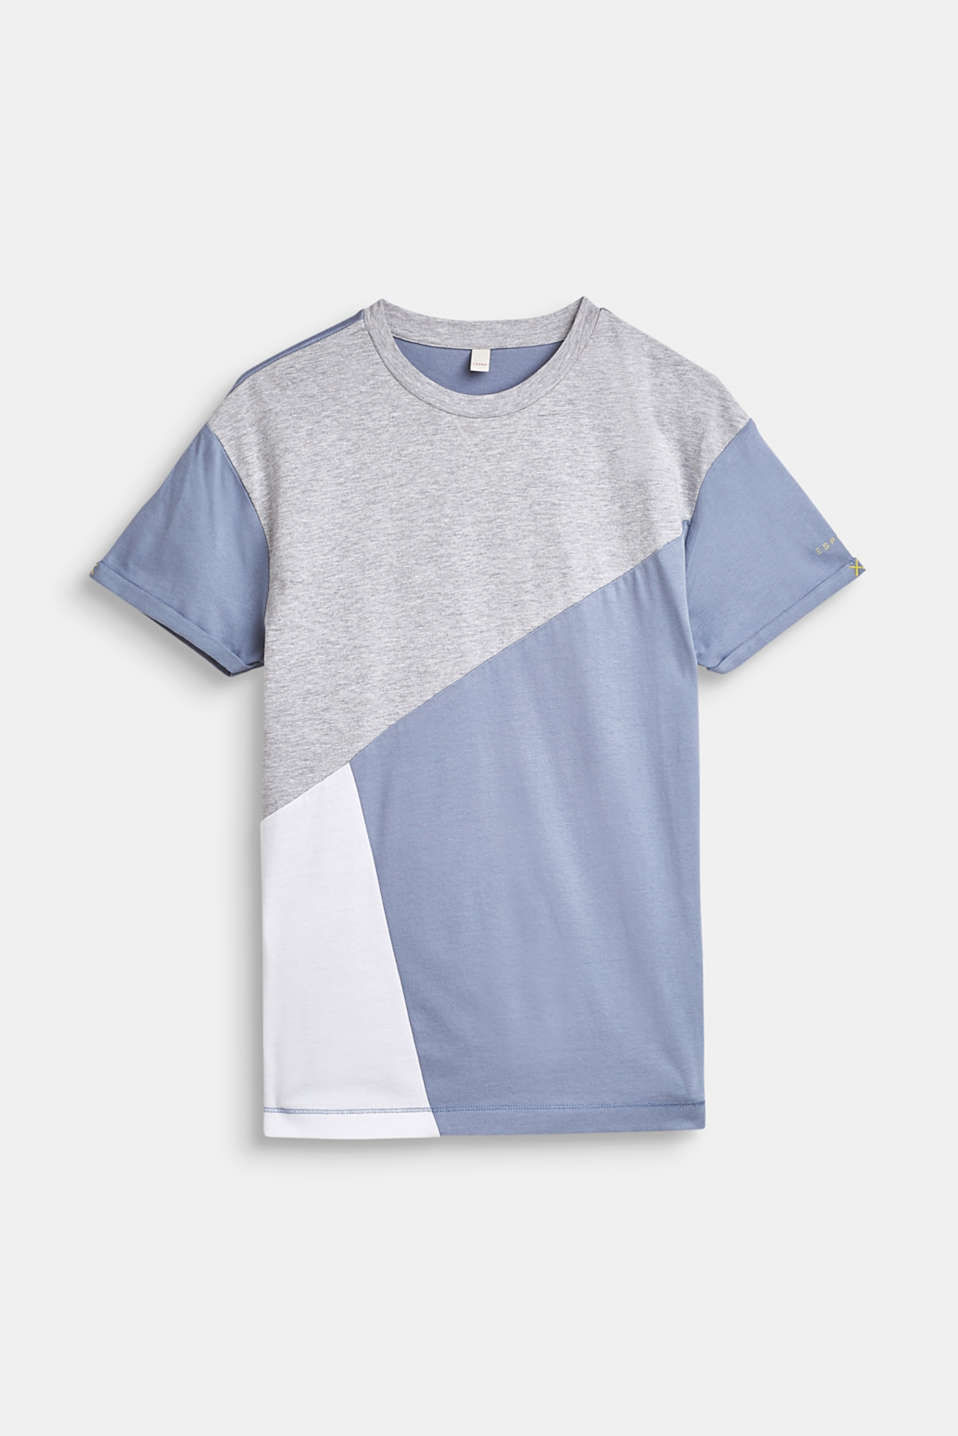 Esprit - T-shirt met colour block design, 100% katoen